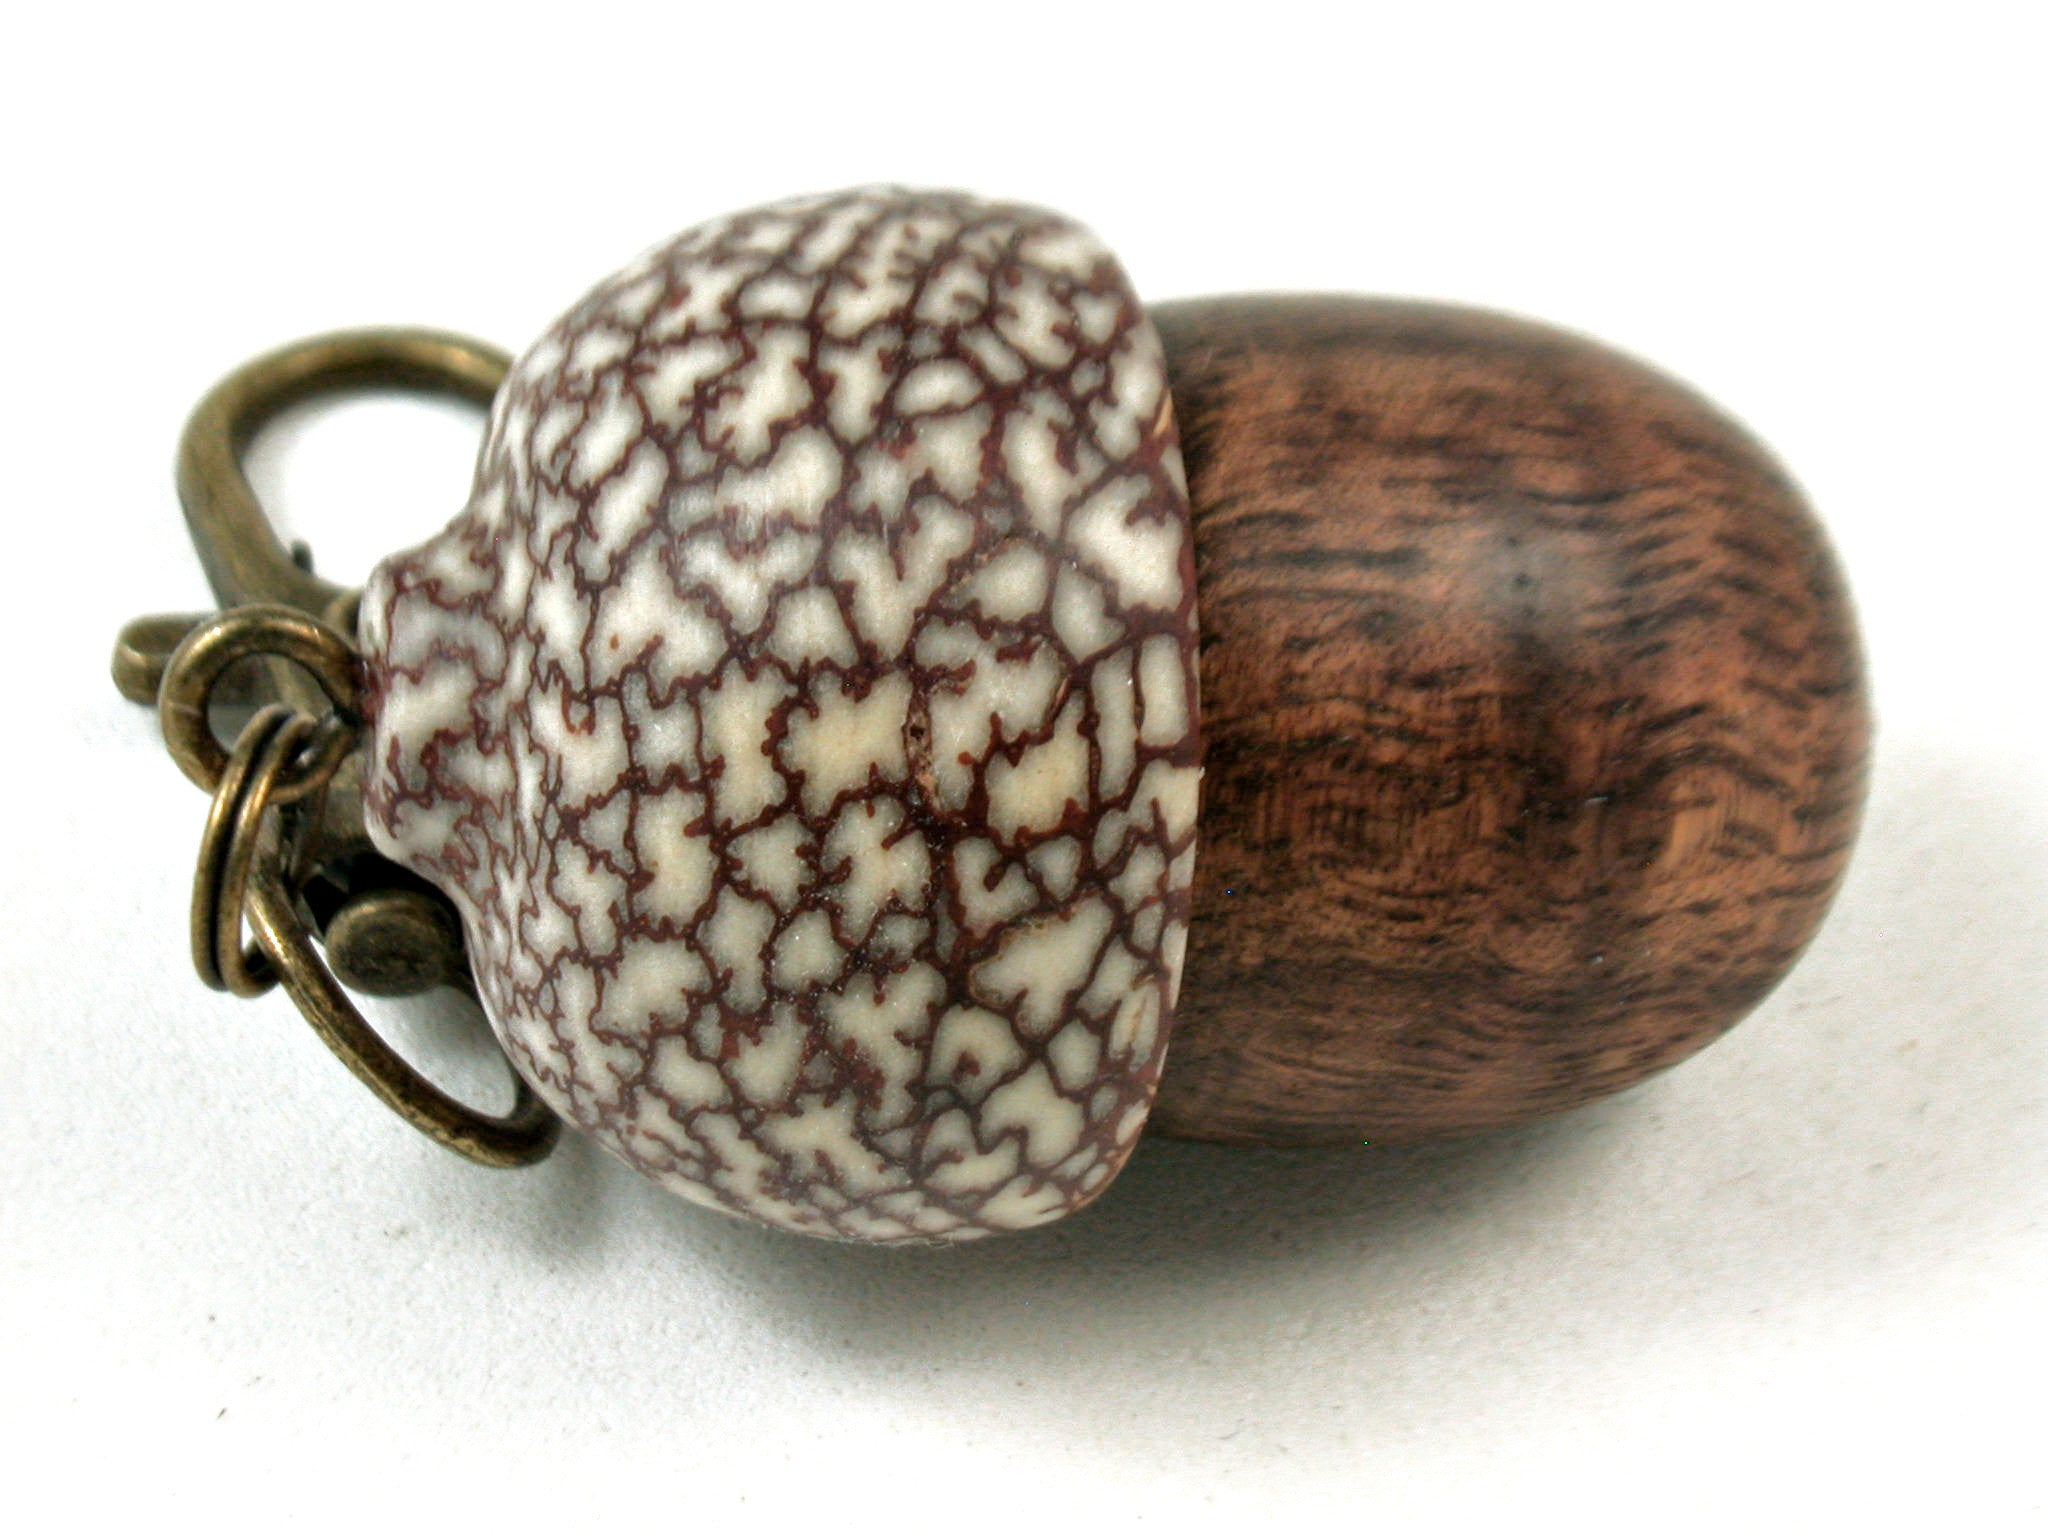 LV-3485  Curly Koa & Betelnut Acorn Pendant Box, Charm, Keychain-SCREW CAP